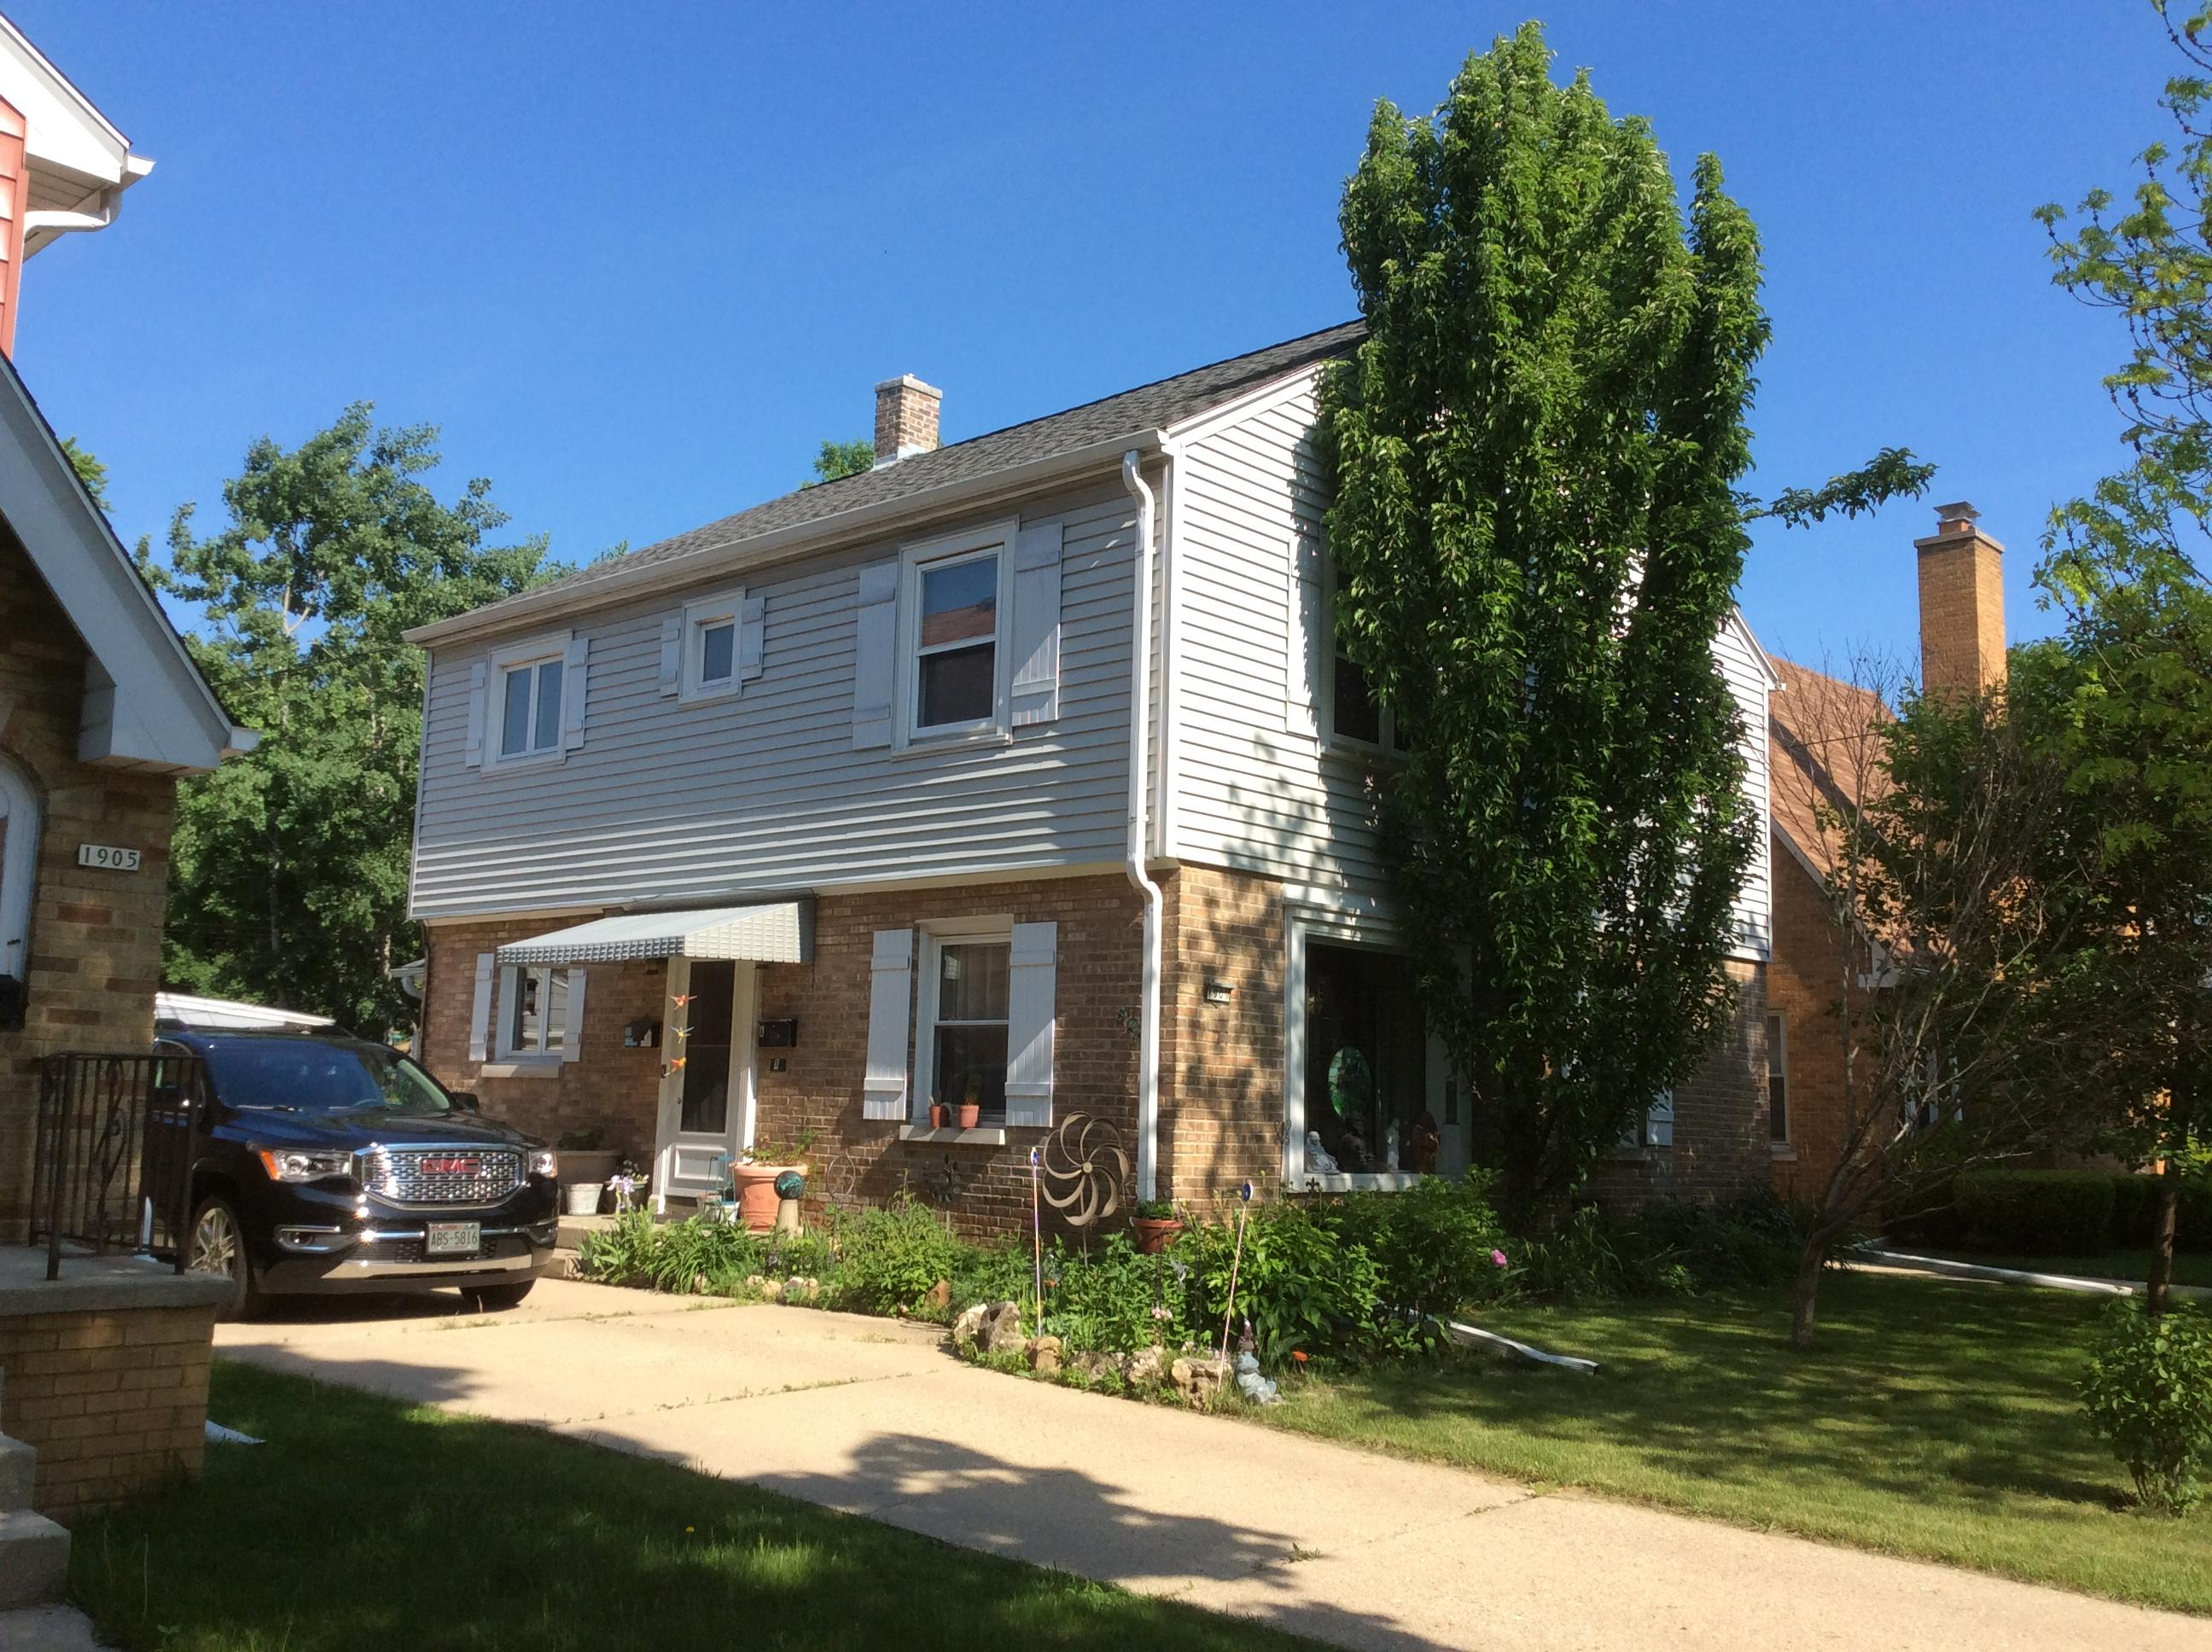 1909 N 85th St #upper Wauwatosa, WI 53226 Property Image